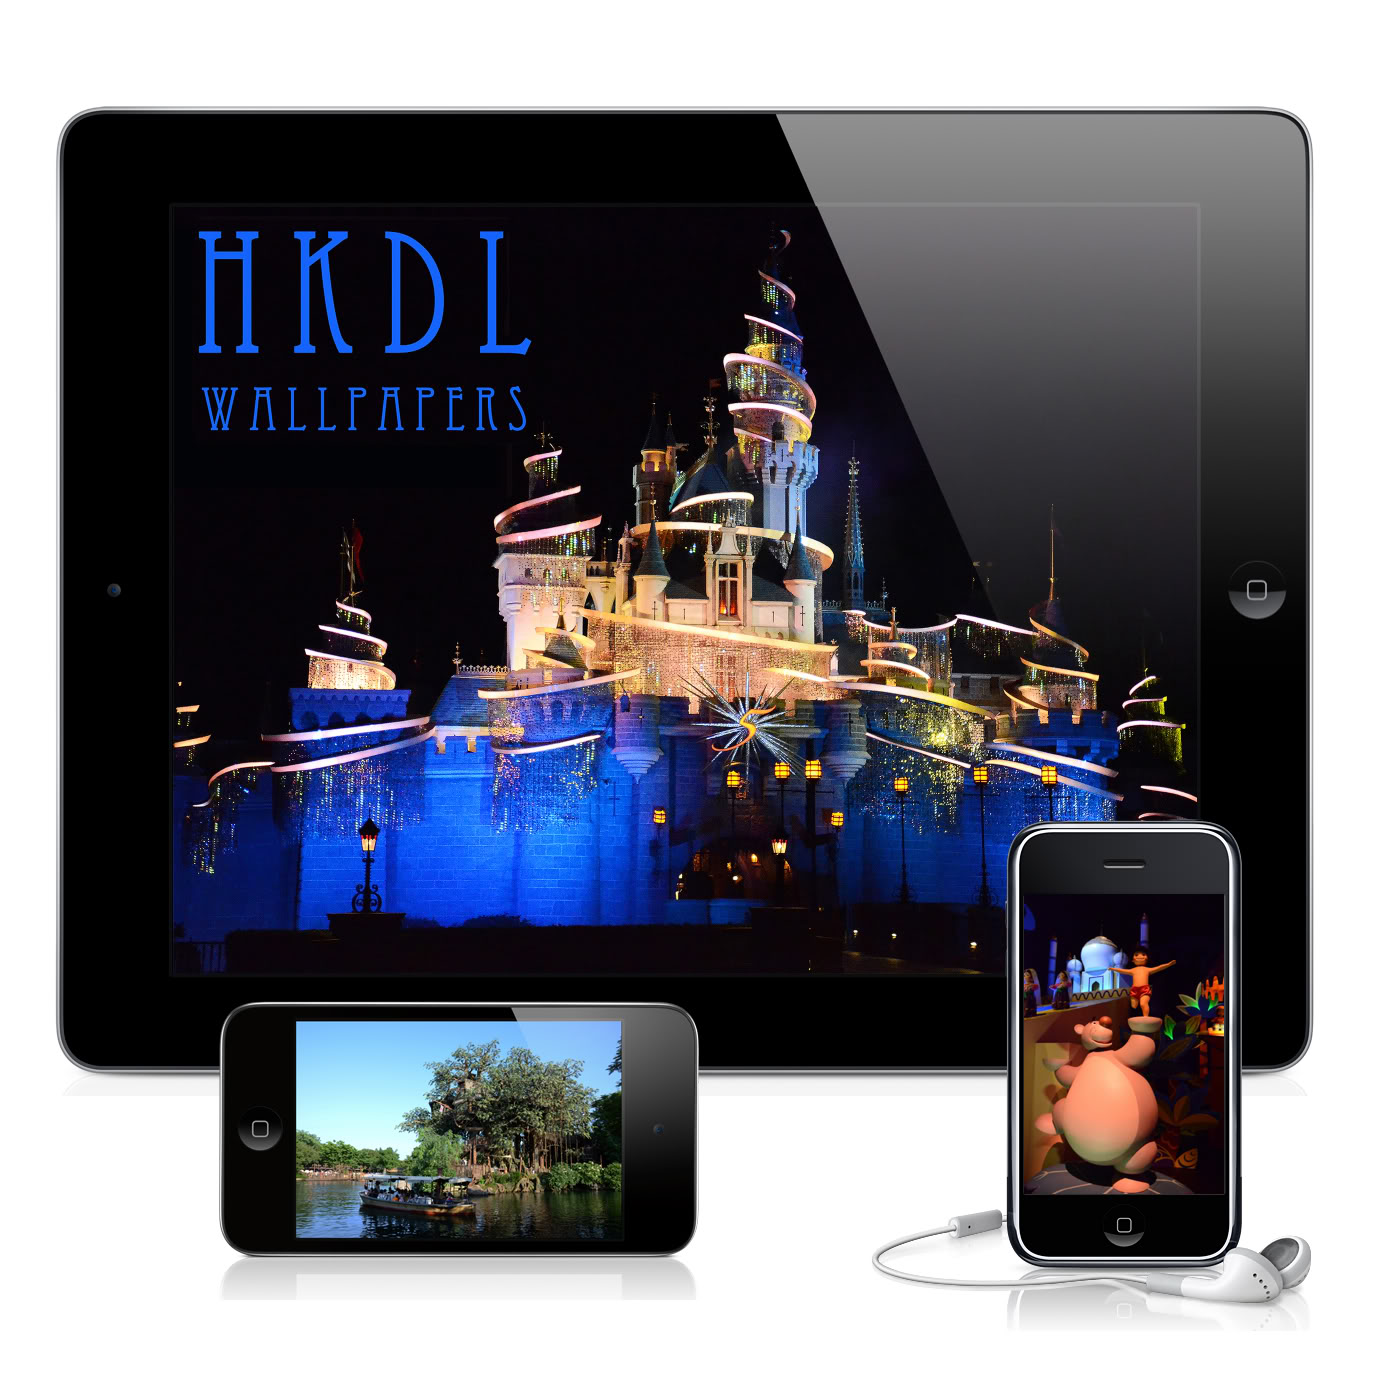 Nouvelle application iPhone sur Hong Kong Disneyland avec 206 photos Pubsanstexte